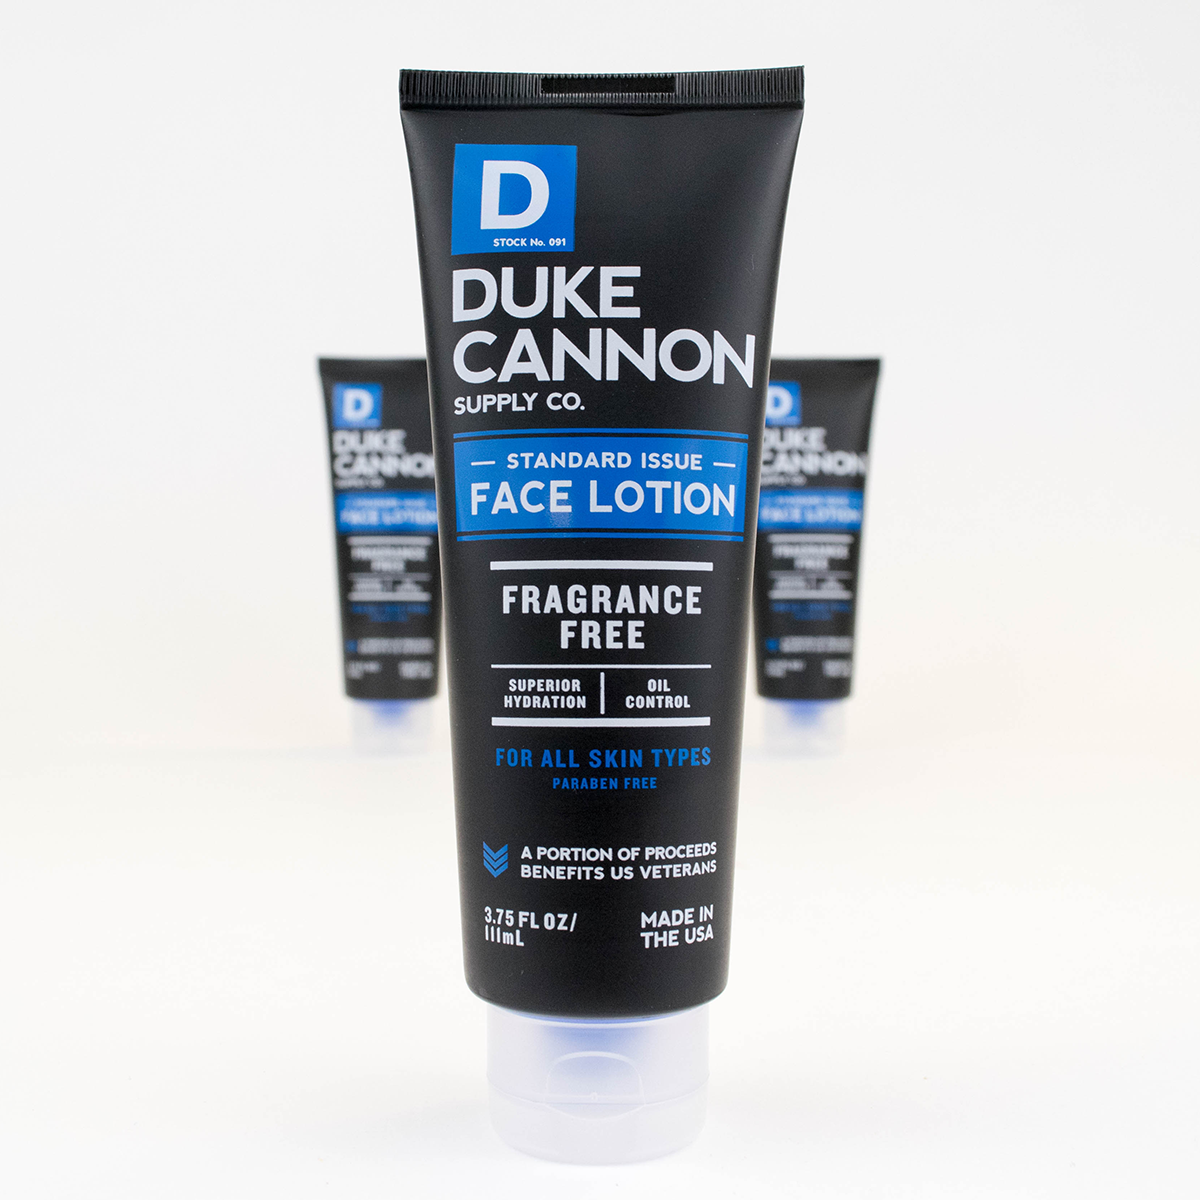 Duke Cannon Standard Issue Face Lotion